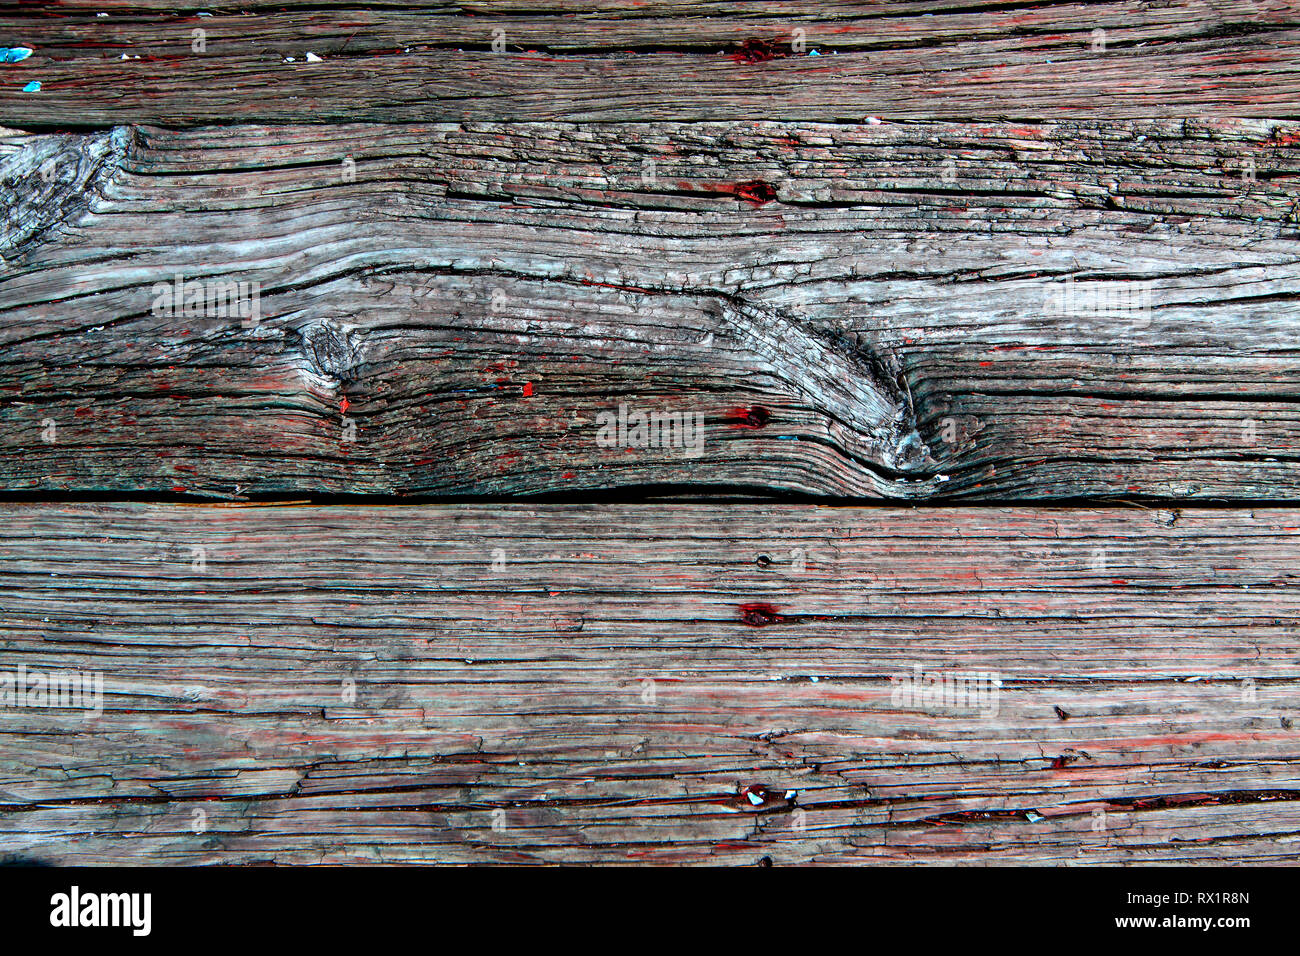 Weathered decking close up with worn red paint and nail heads - Stock Image